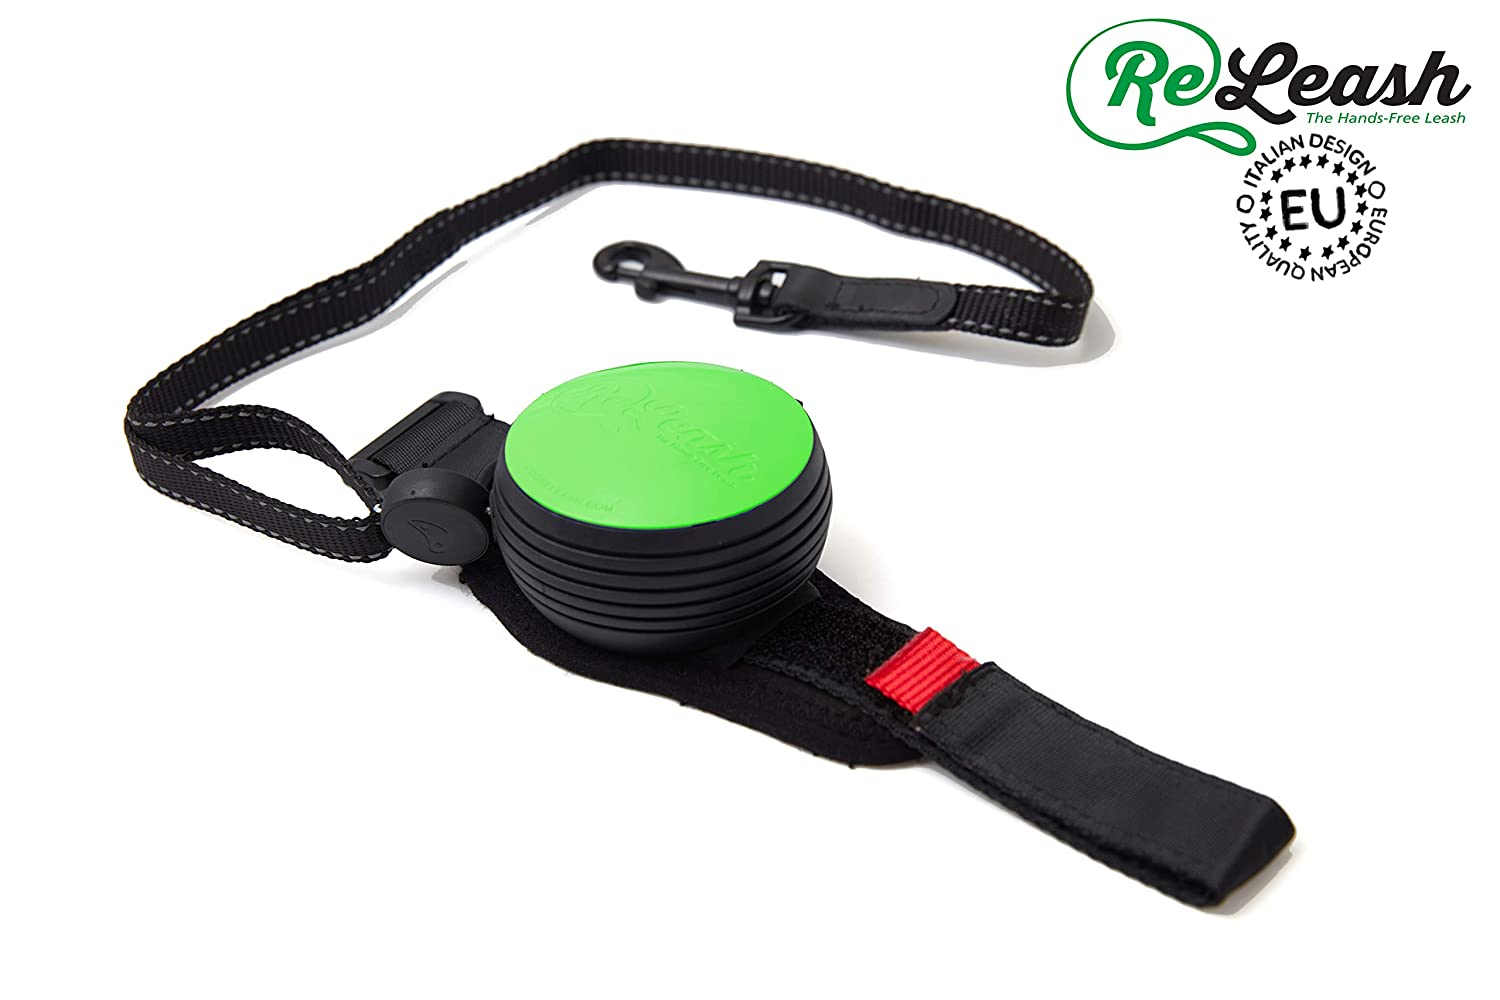 Green ReLeash Green The World's First Hands-Free Retractable Leash   Available in Multiple colors   9ft Retractable Leash